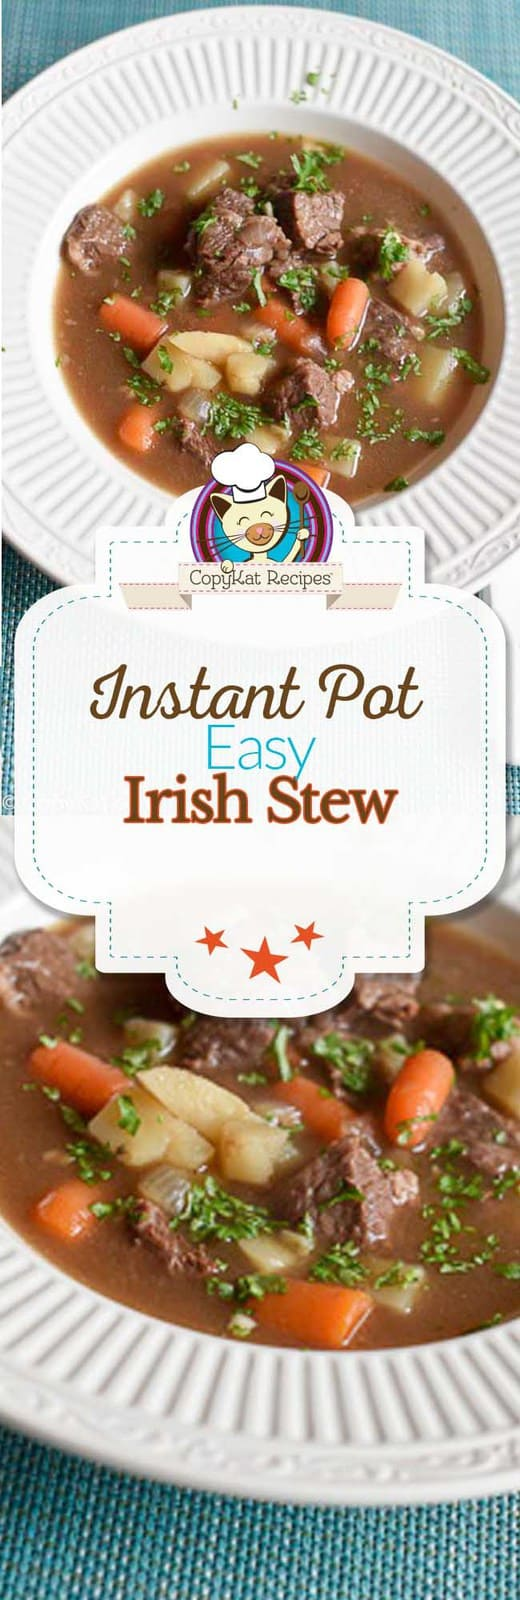 Make delicious Irish Stew in your Instant Pot.  This stew is so easy to make, and the beef is so tender.